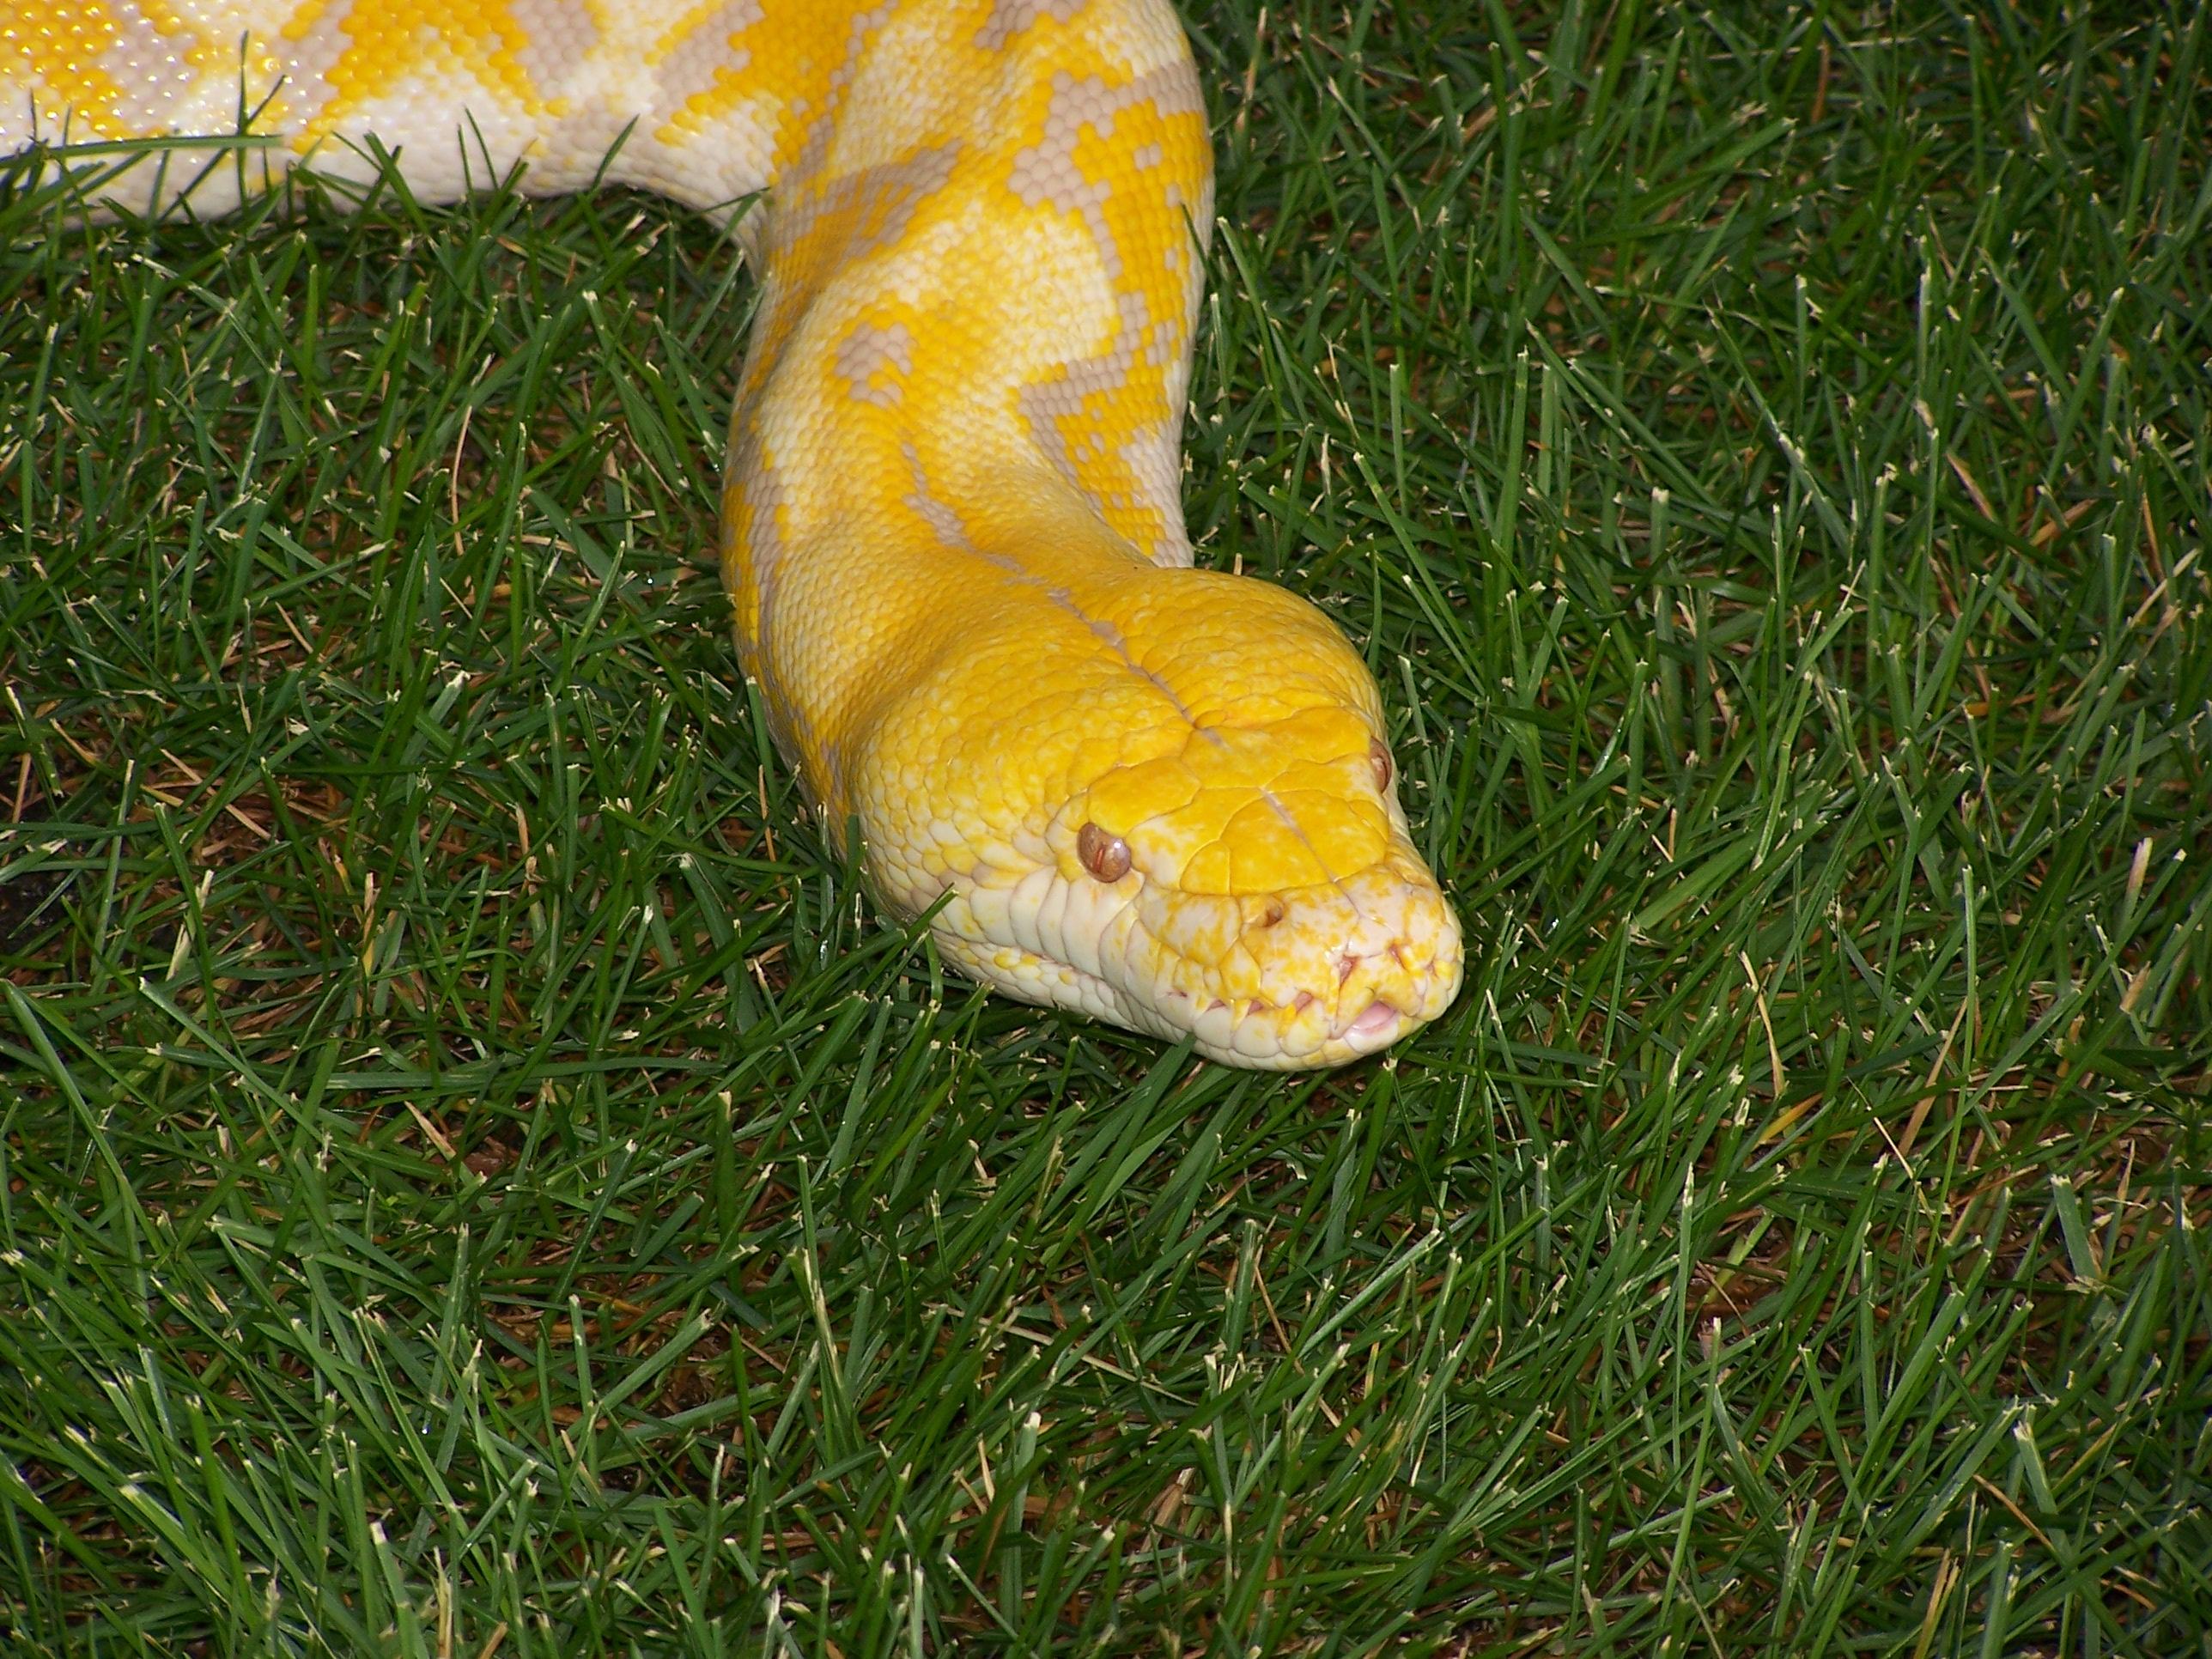 http://upload.wikimedia.org/wikipedia/commons/b/bf/Reticulated_python_albino_head_MN_2007.JPG